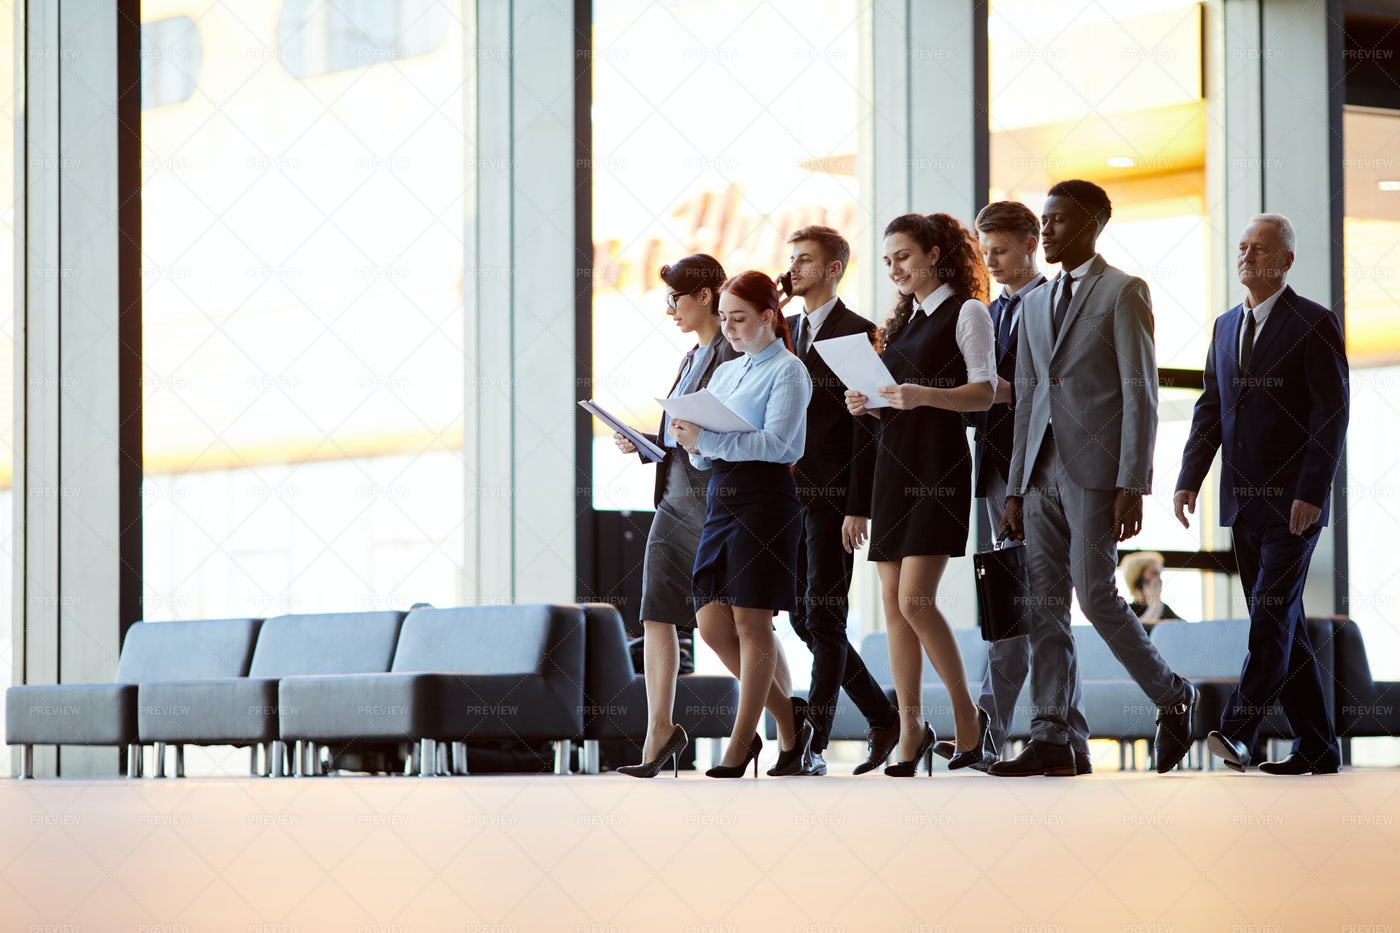 Office Workers Crossing Hall: Stock Photos